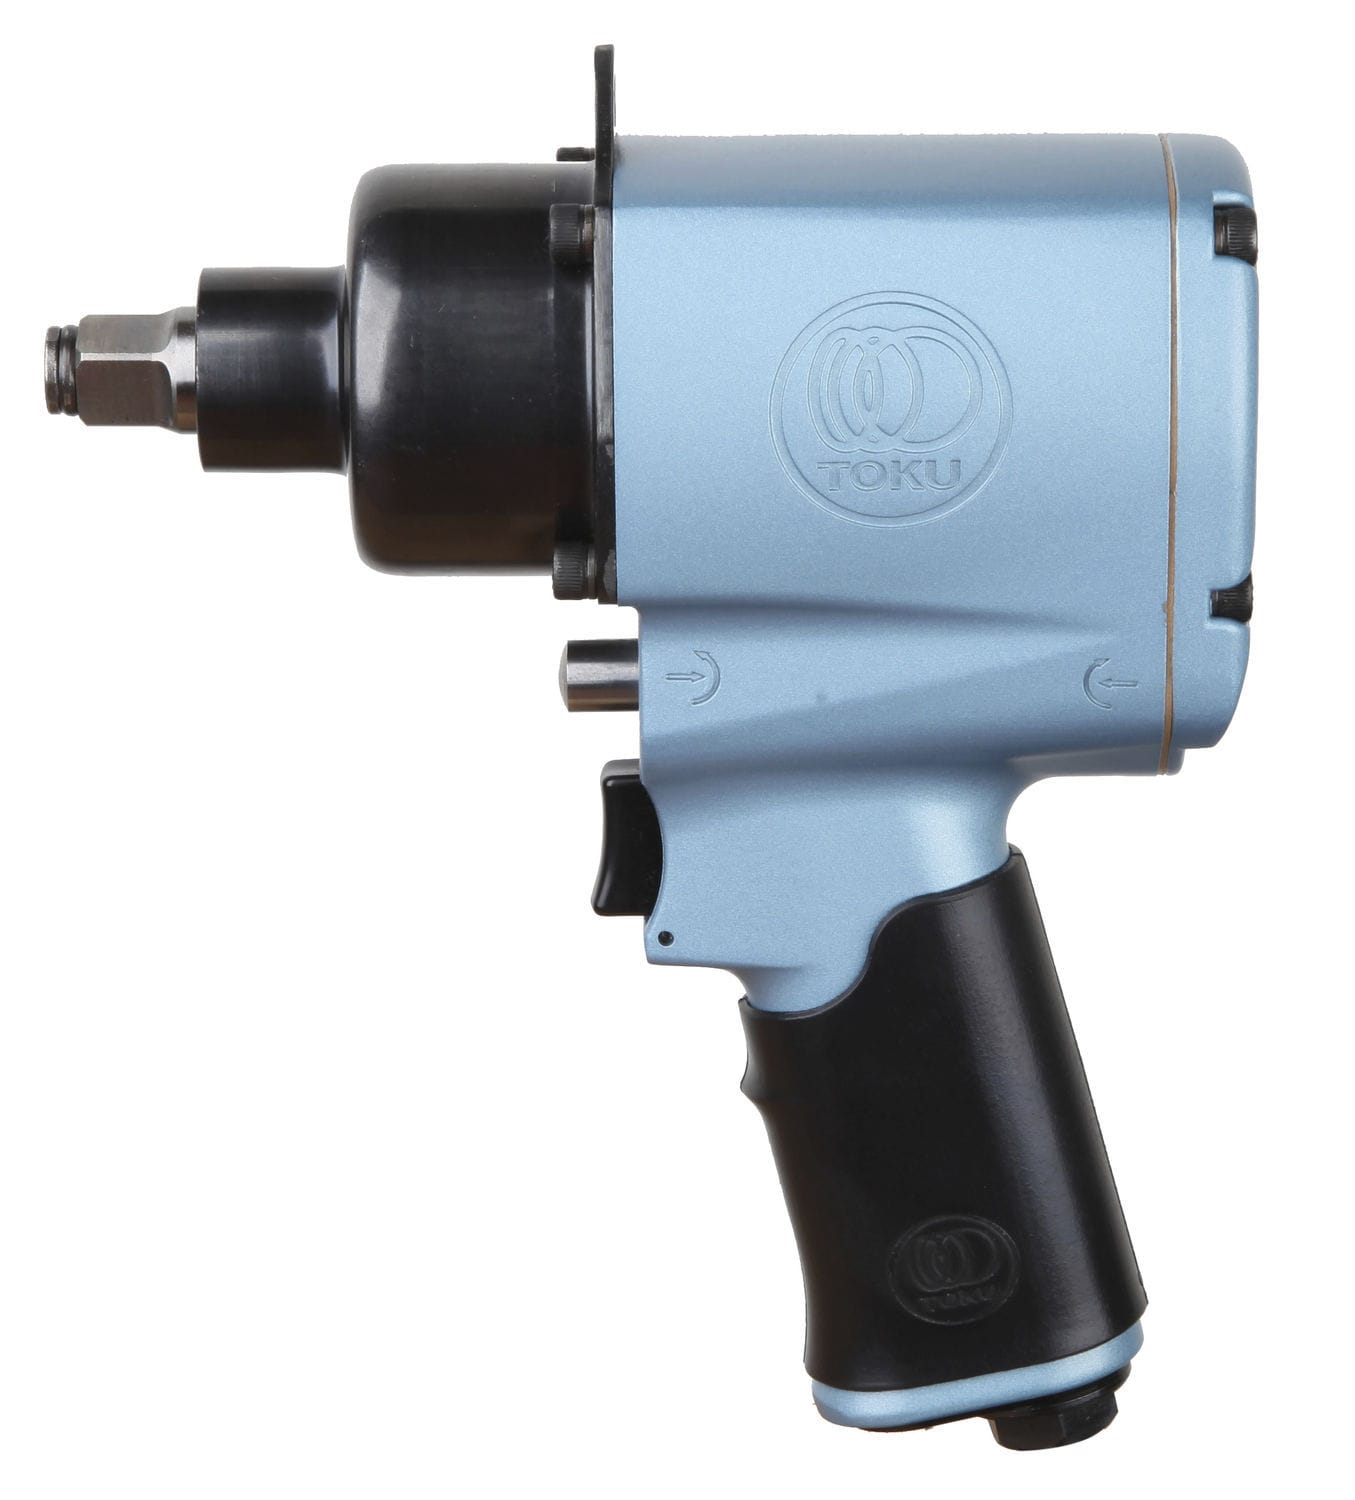 pneumatic impact wrench / pistol - TOKU MI-17MG